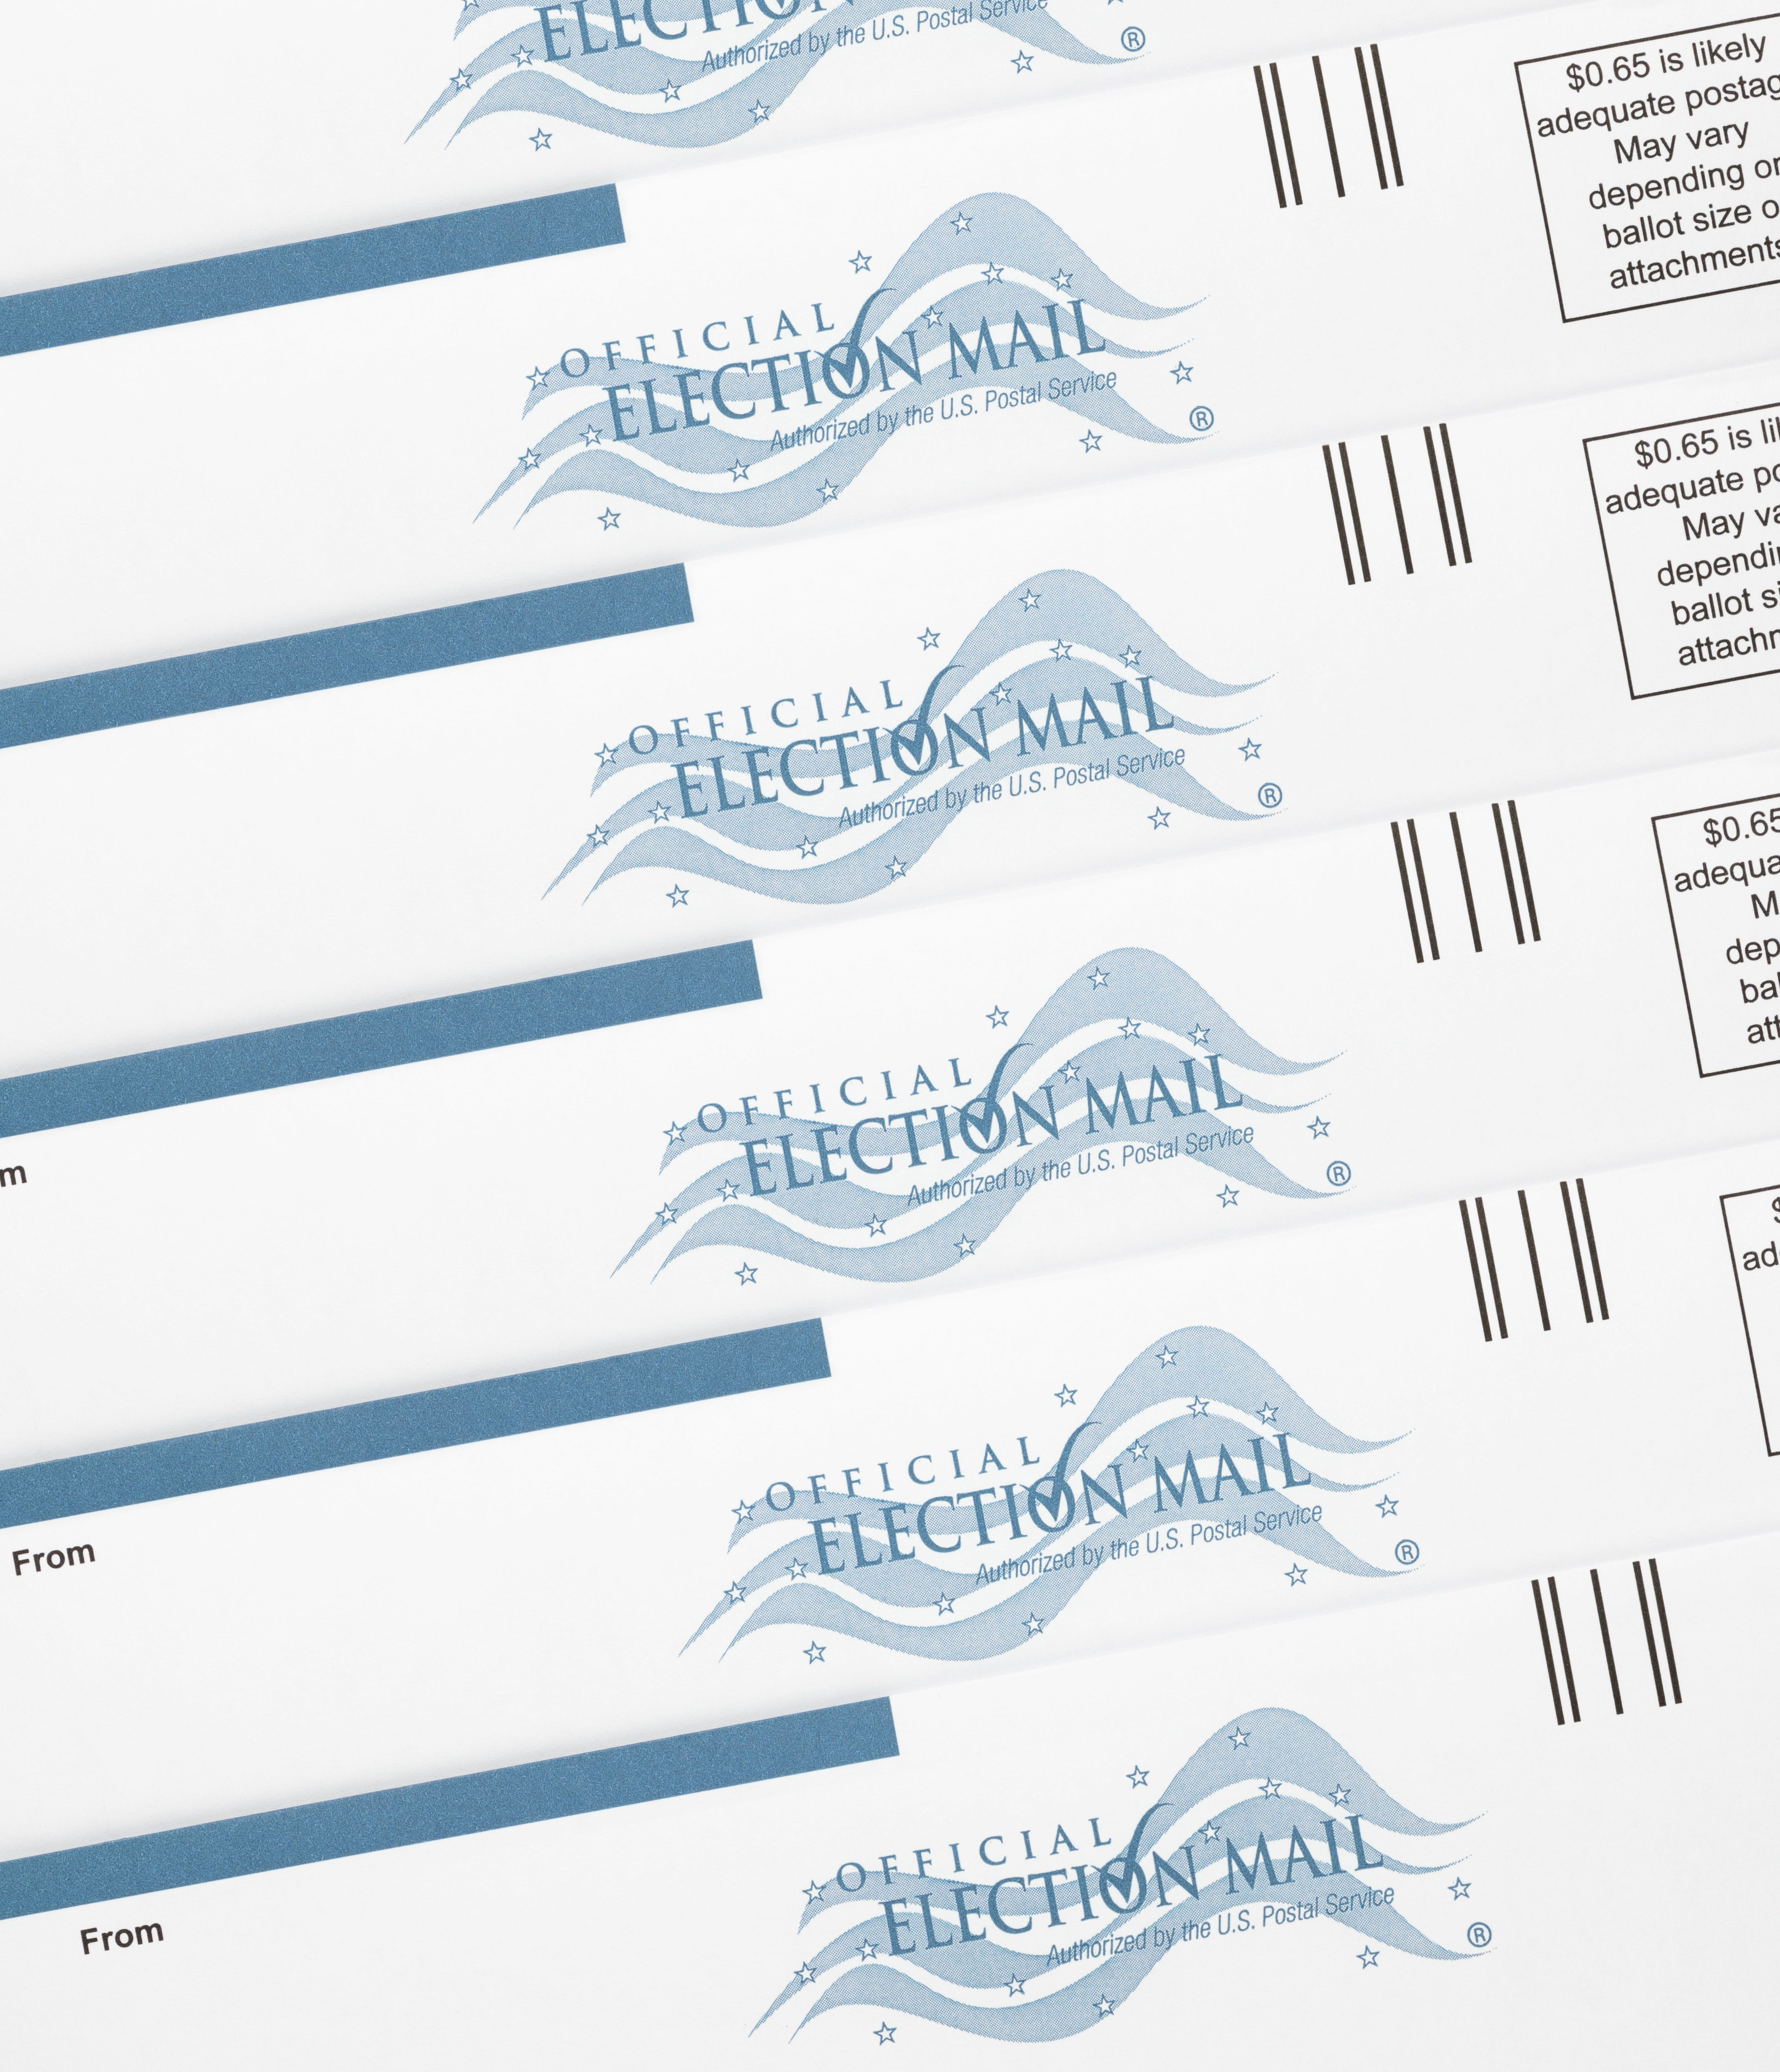 Colorado Springs, Colorado, USA - September 21, 2012: Several official US mail-in ballot envelopes showing the 'Official Election Mail' stamp. Mail-in ballots enable a person to vote through the mail instead of in person at a polling place.